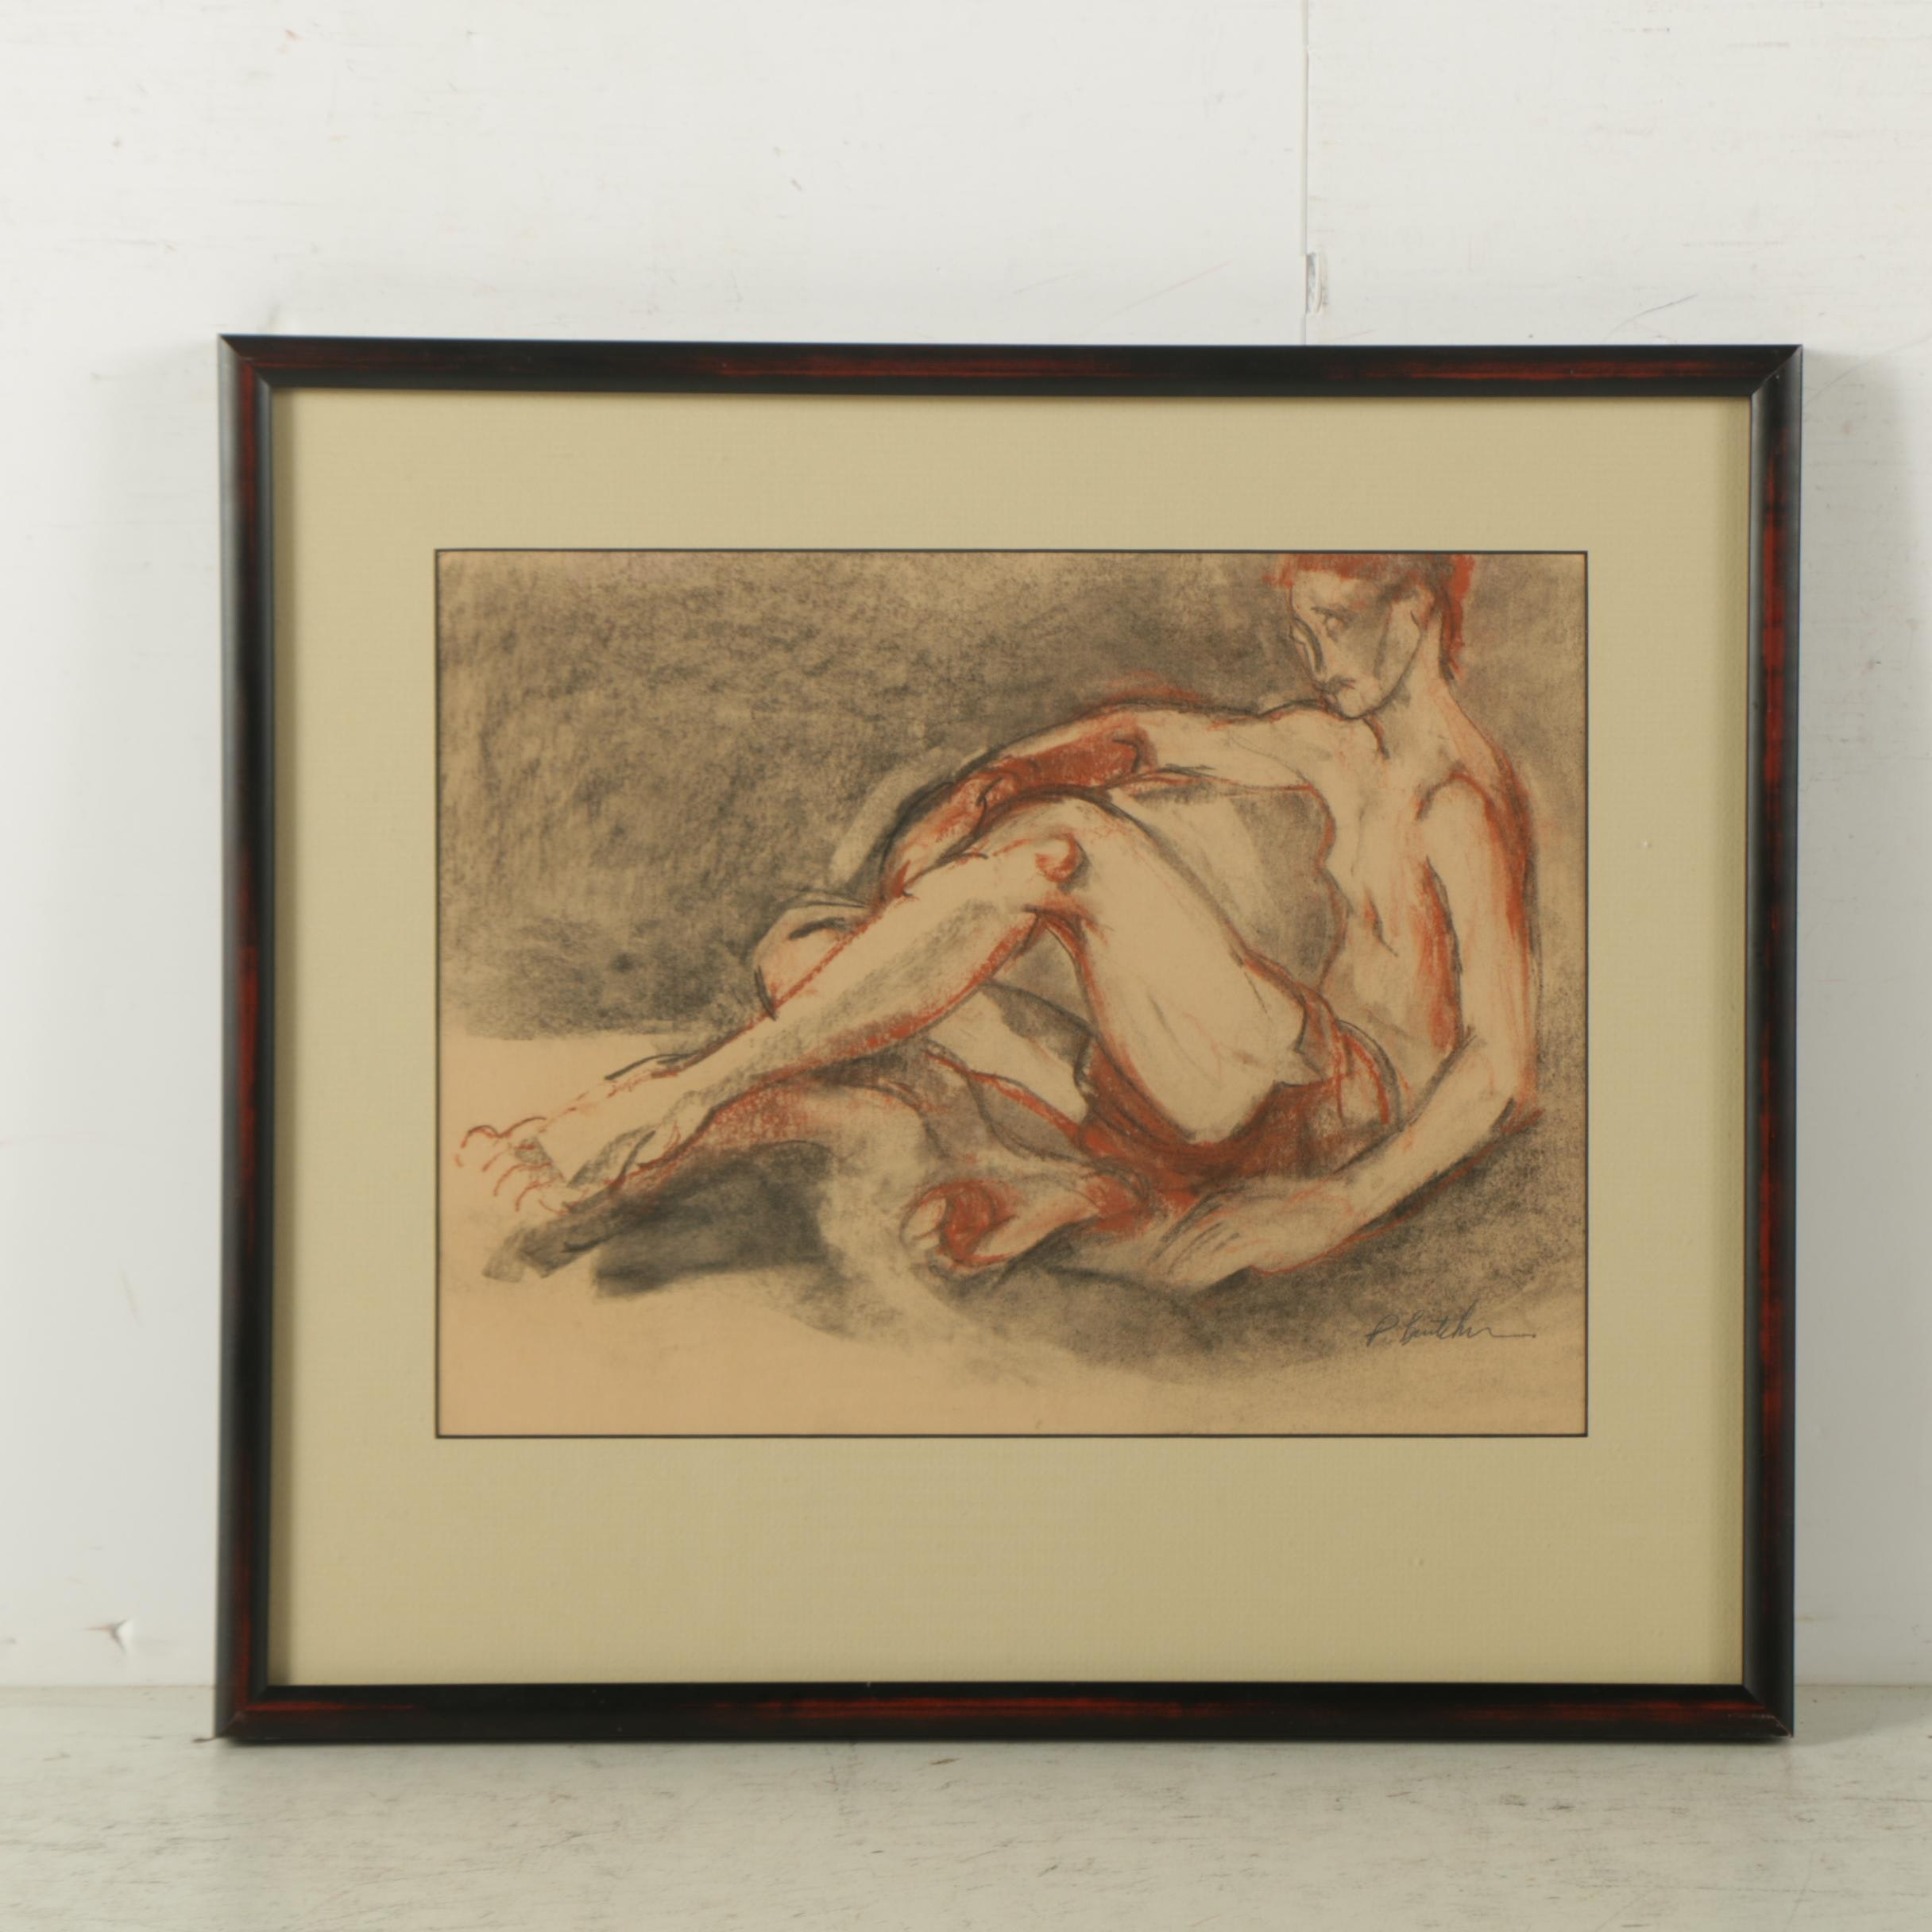 Lithograph on Paper After Drawing of Figure Study